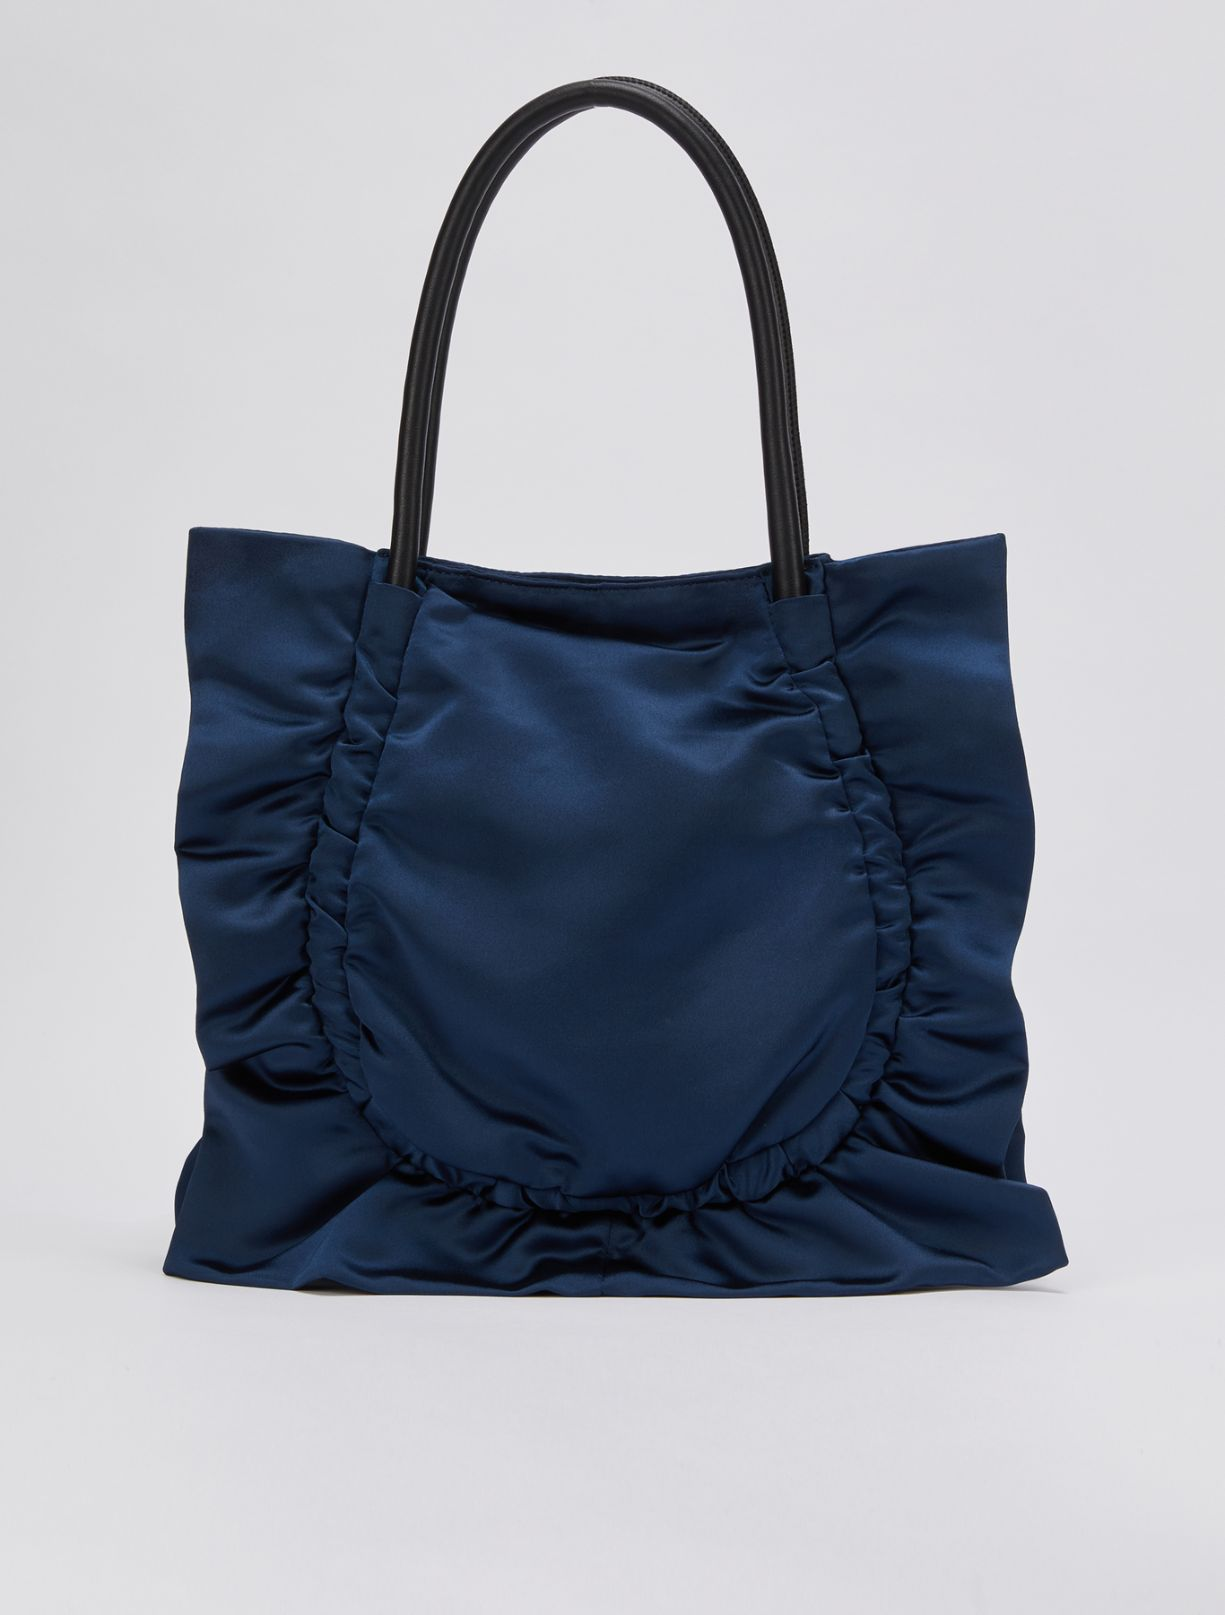 NUDIMINI Handbag navy blue 1